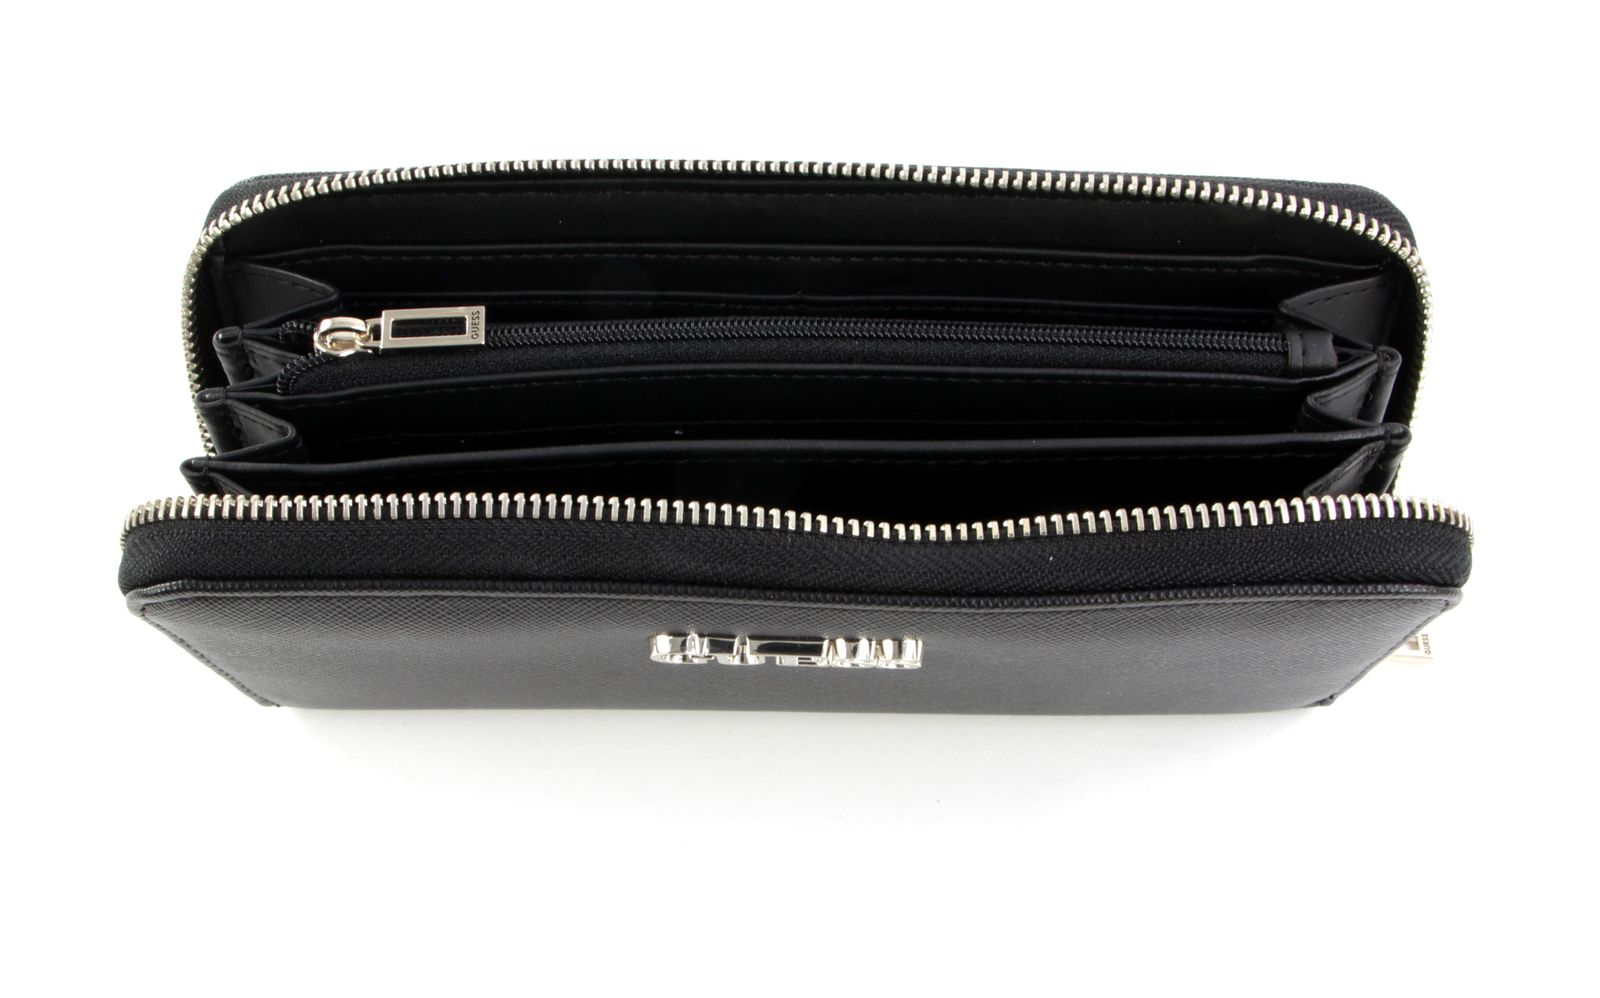 Guess South Bay SLG Large Zip Around Black